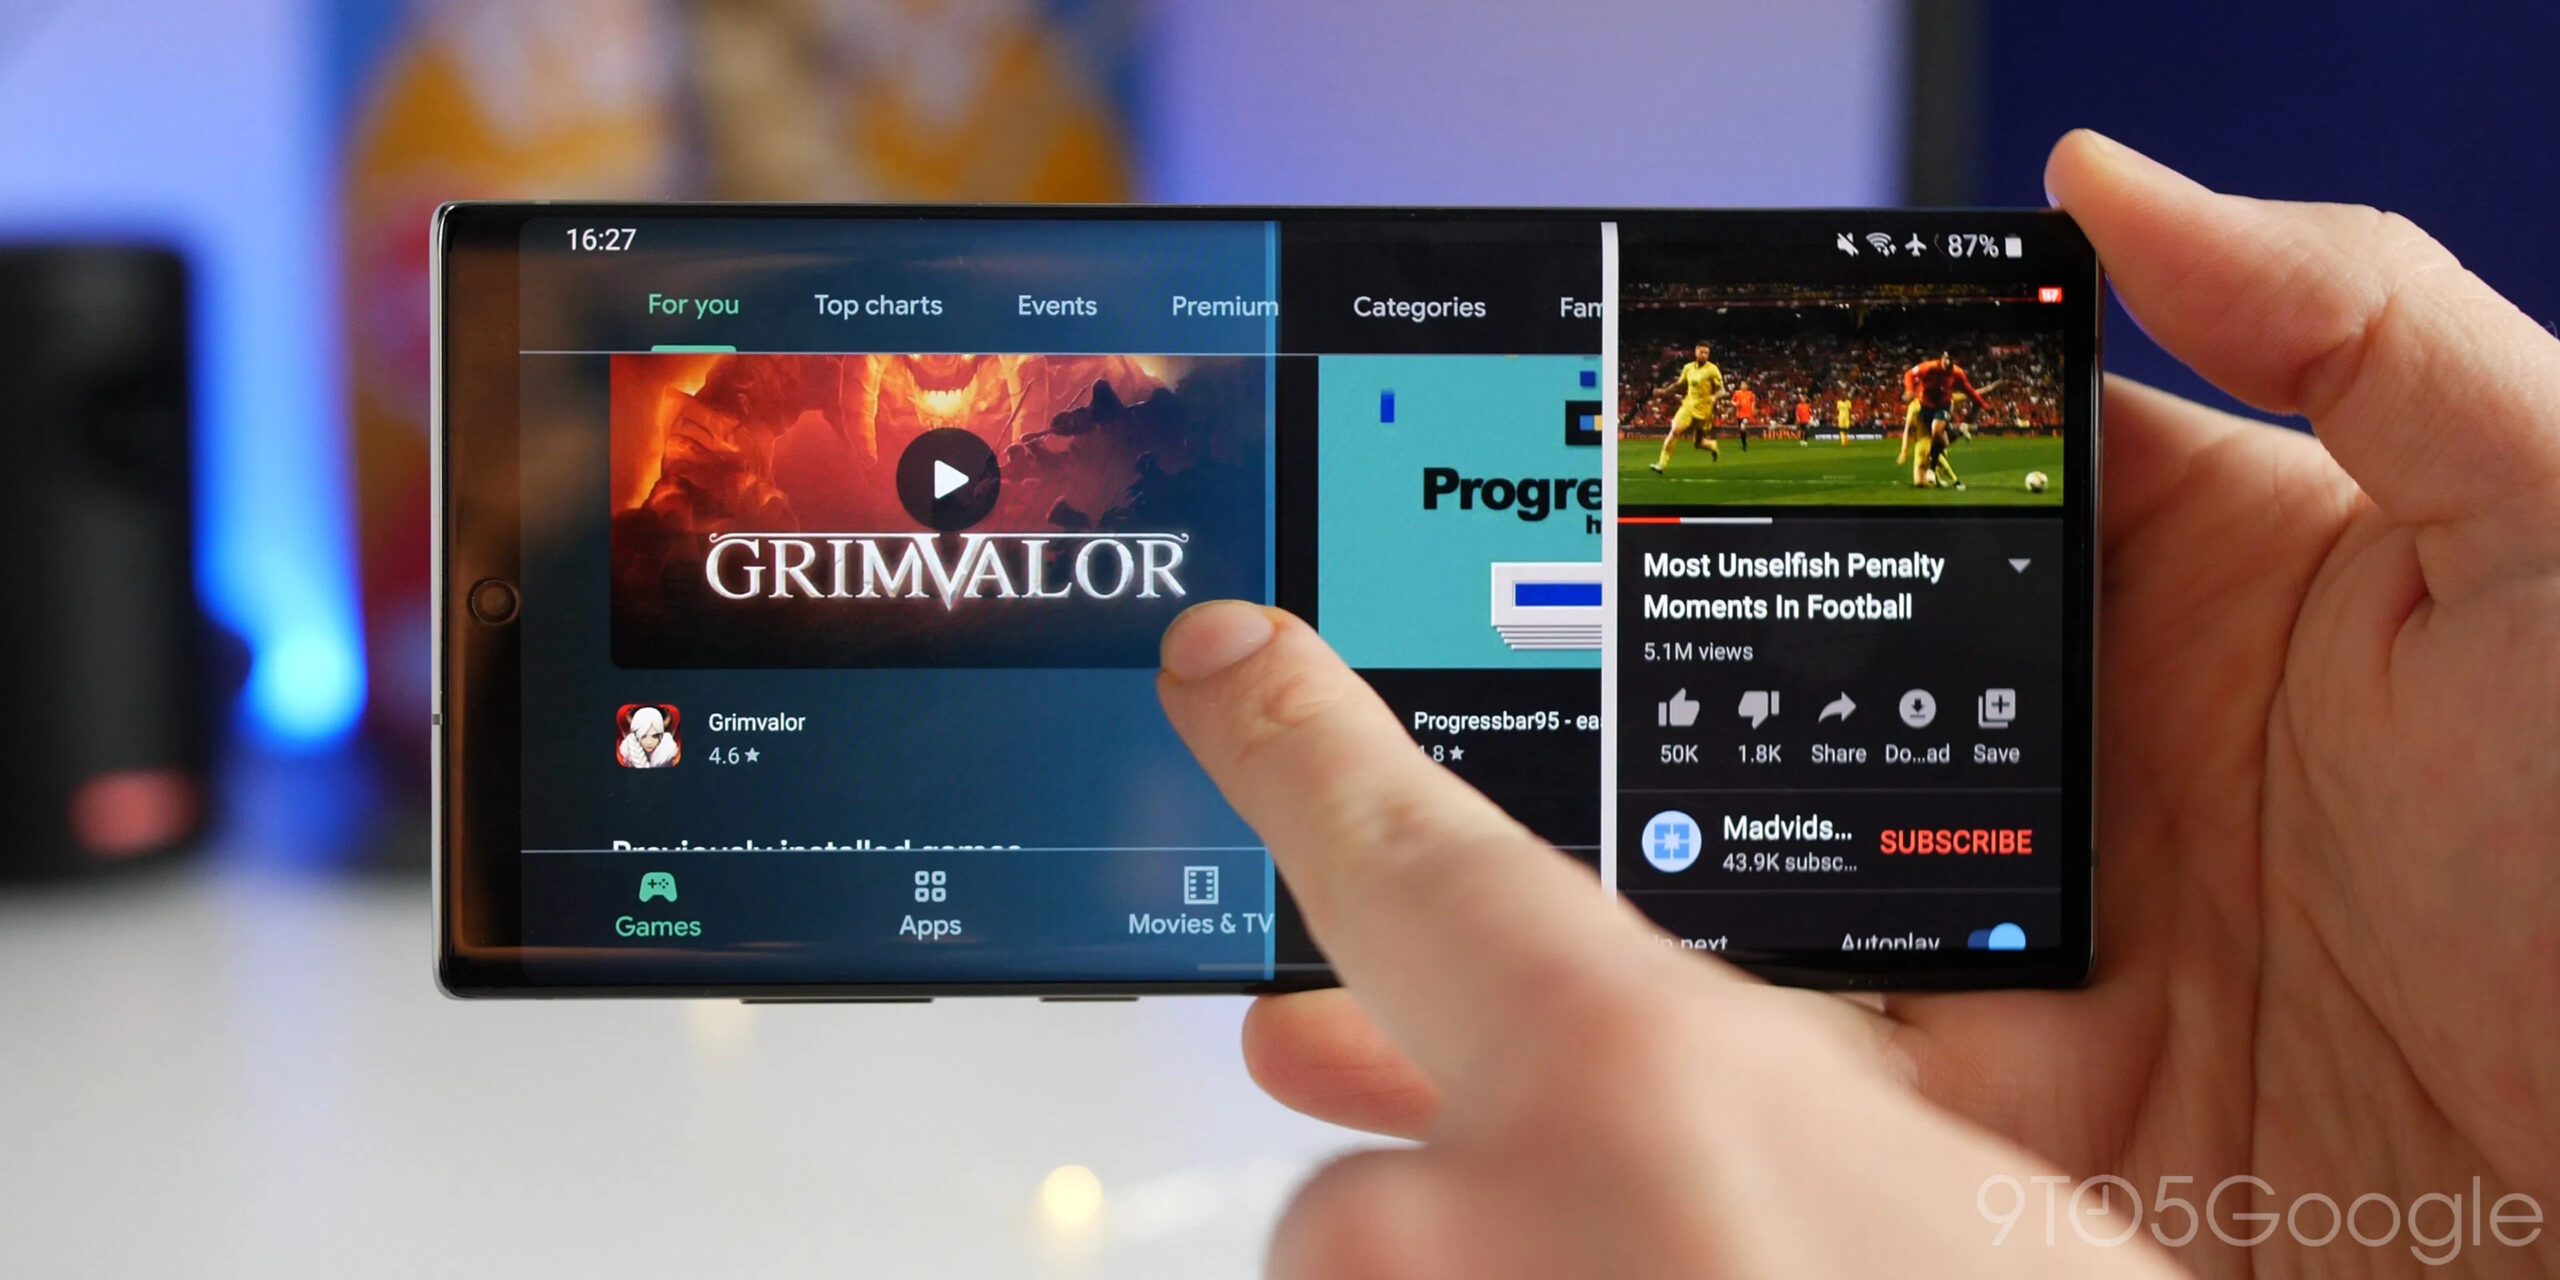 How to run two apps simultaneously on Android through split-screen